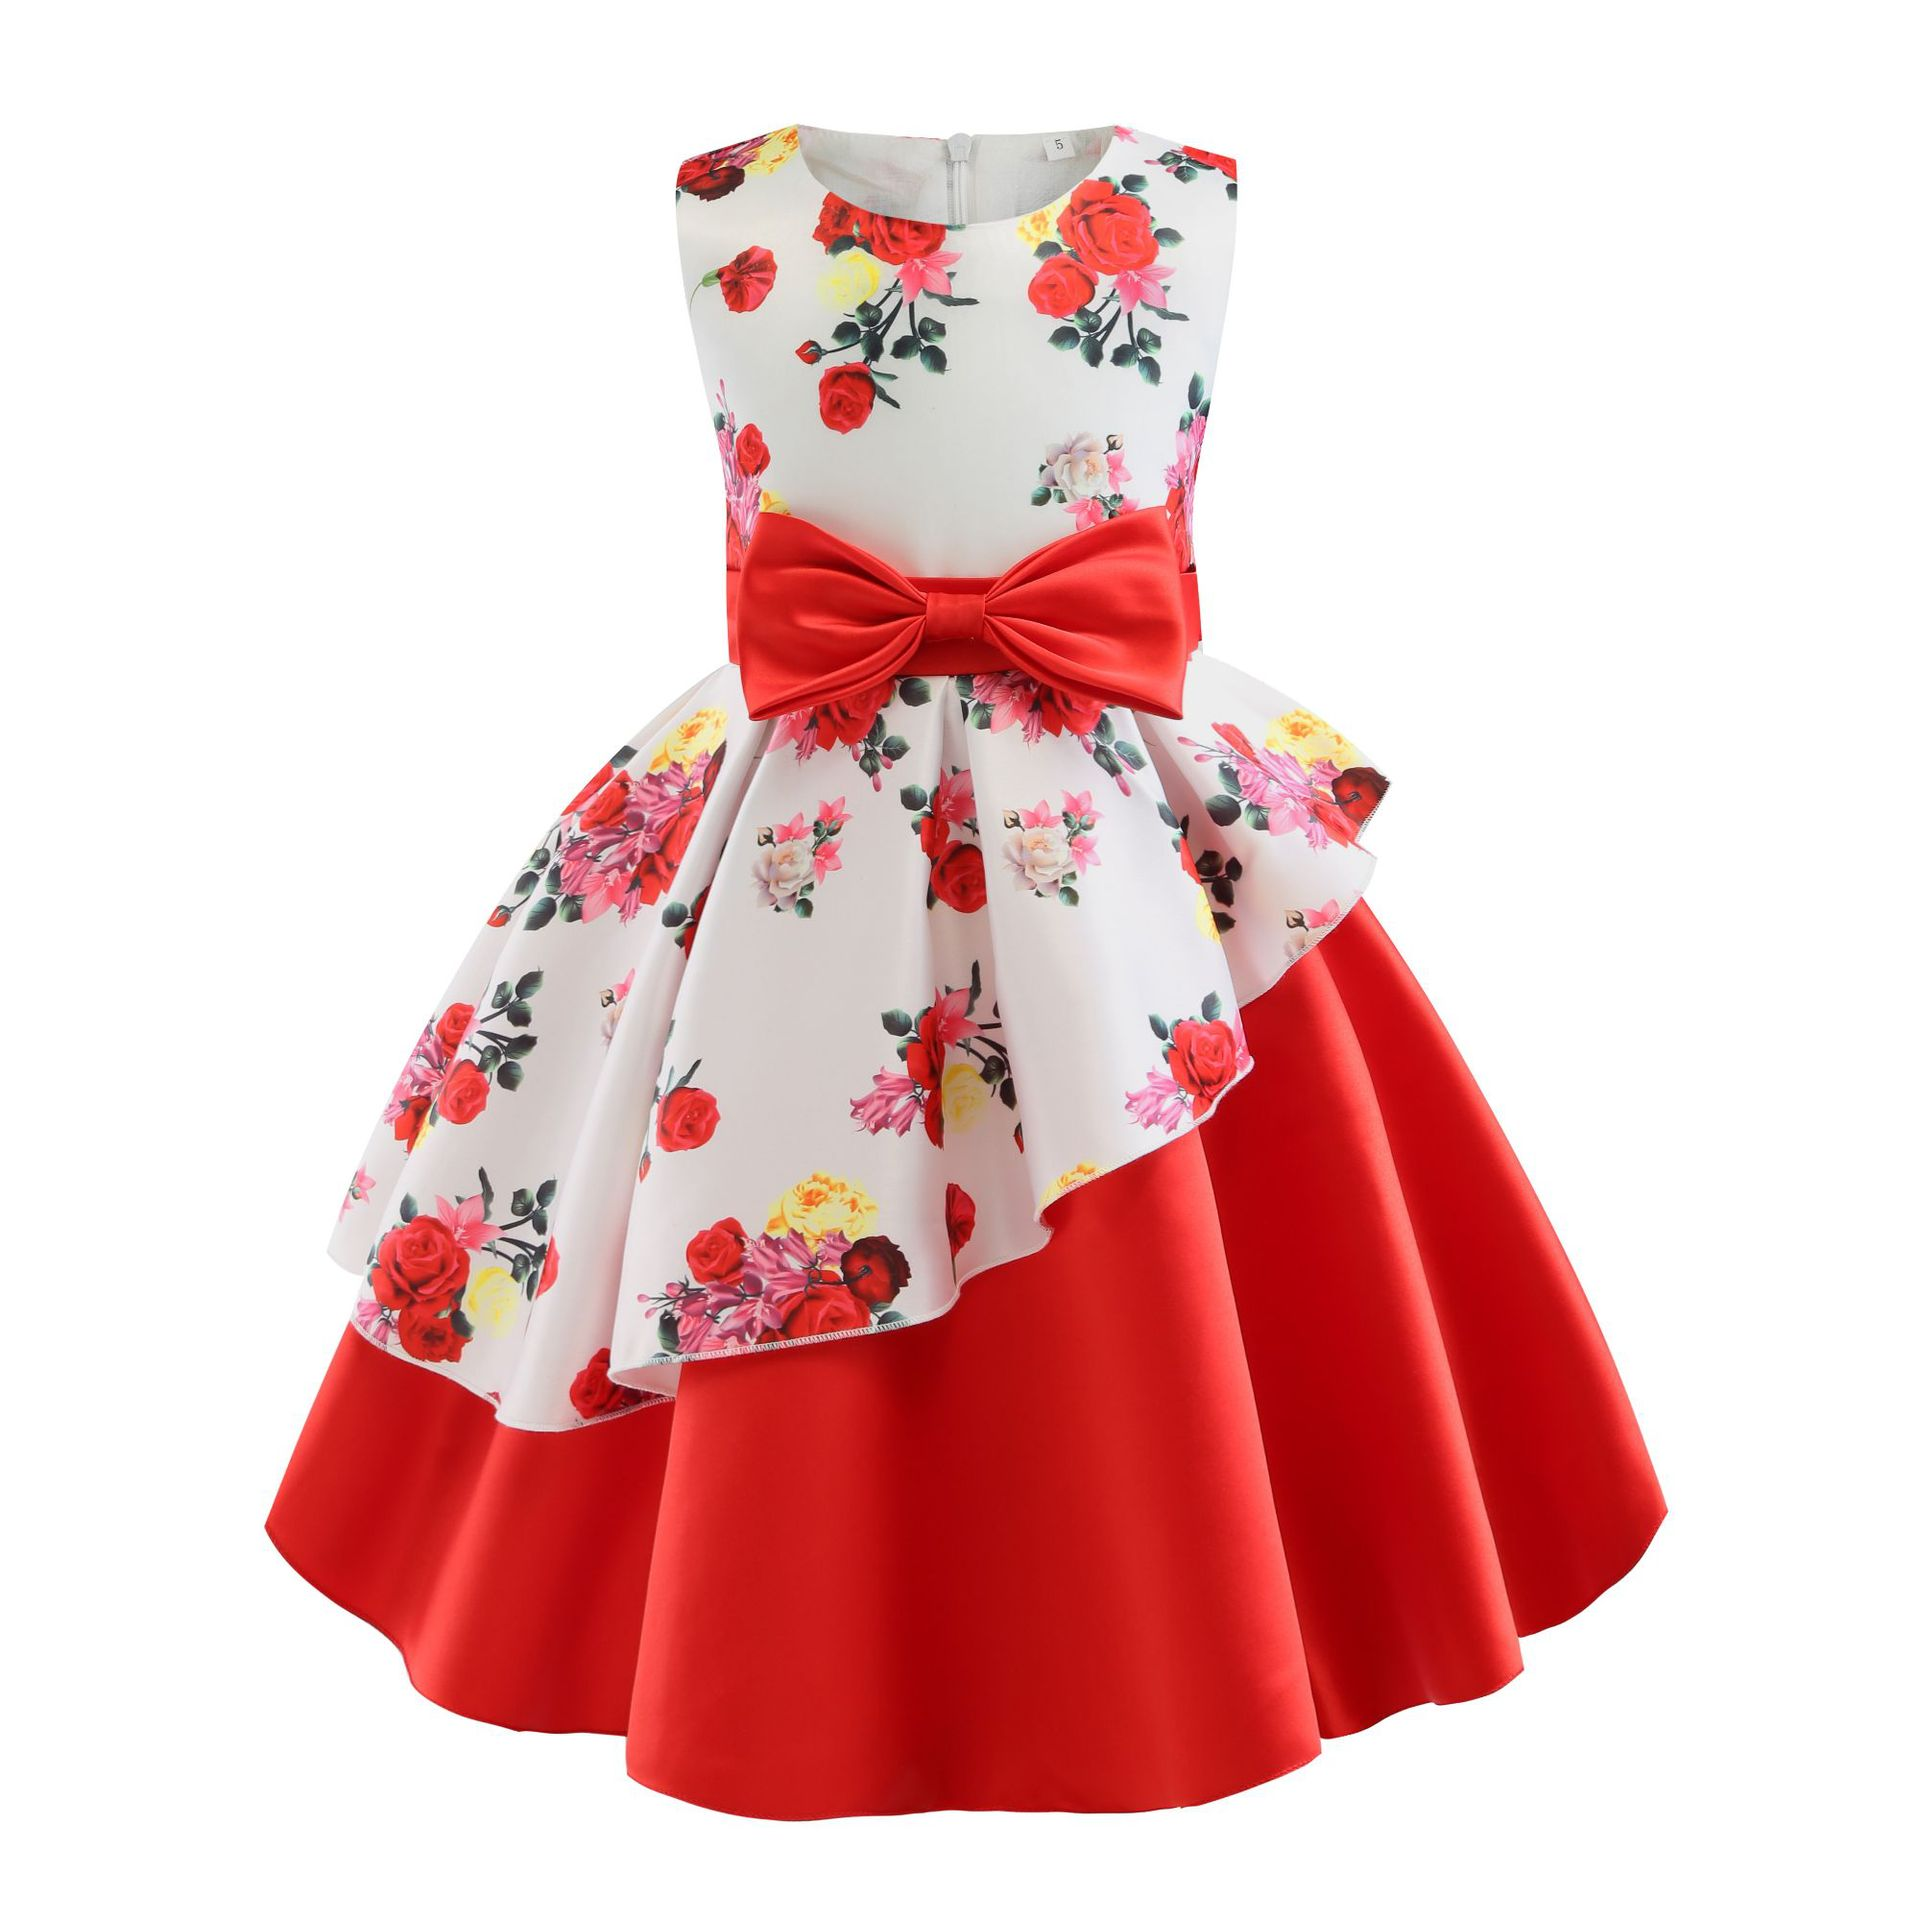 ALI shop ...  ... 32920065740 ... 5 ... 2018 New Summer Girls Birthday Wedding Party Princess Dresses Kids Printing Dress Girl Christmas Prom Dress 2-9 years old ...